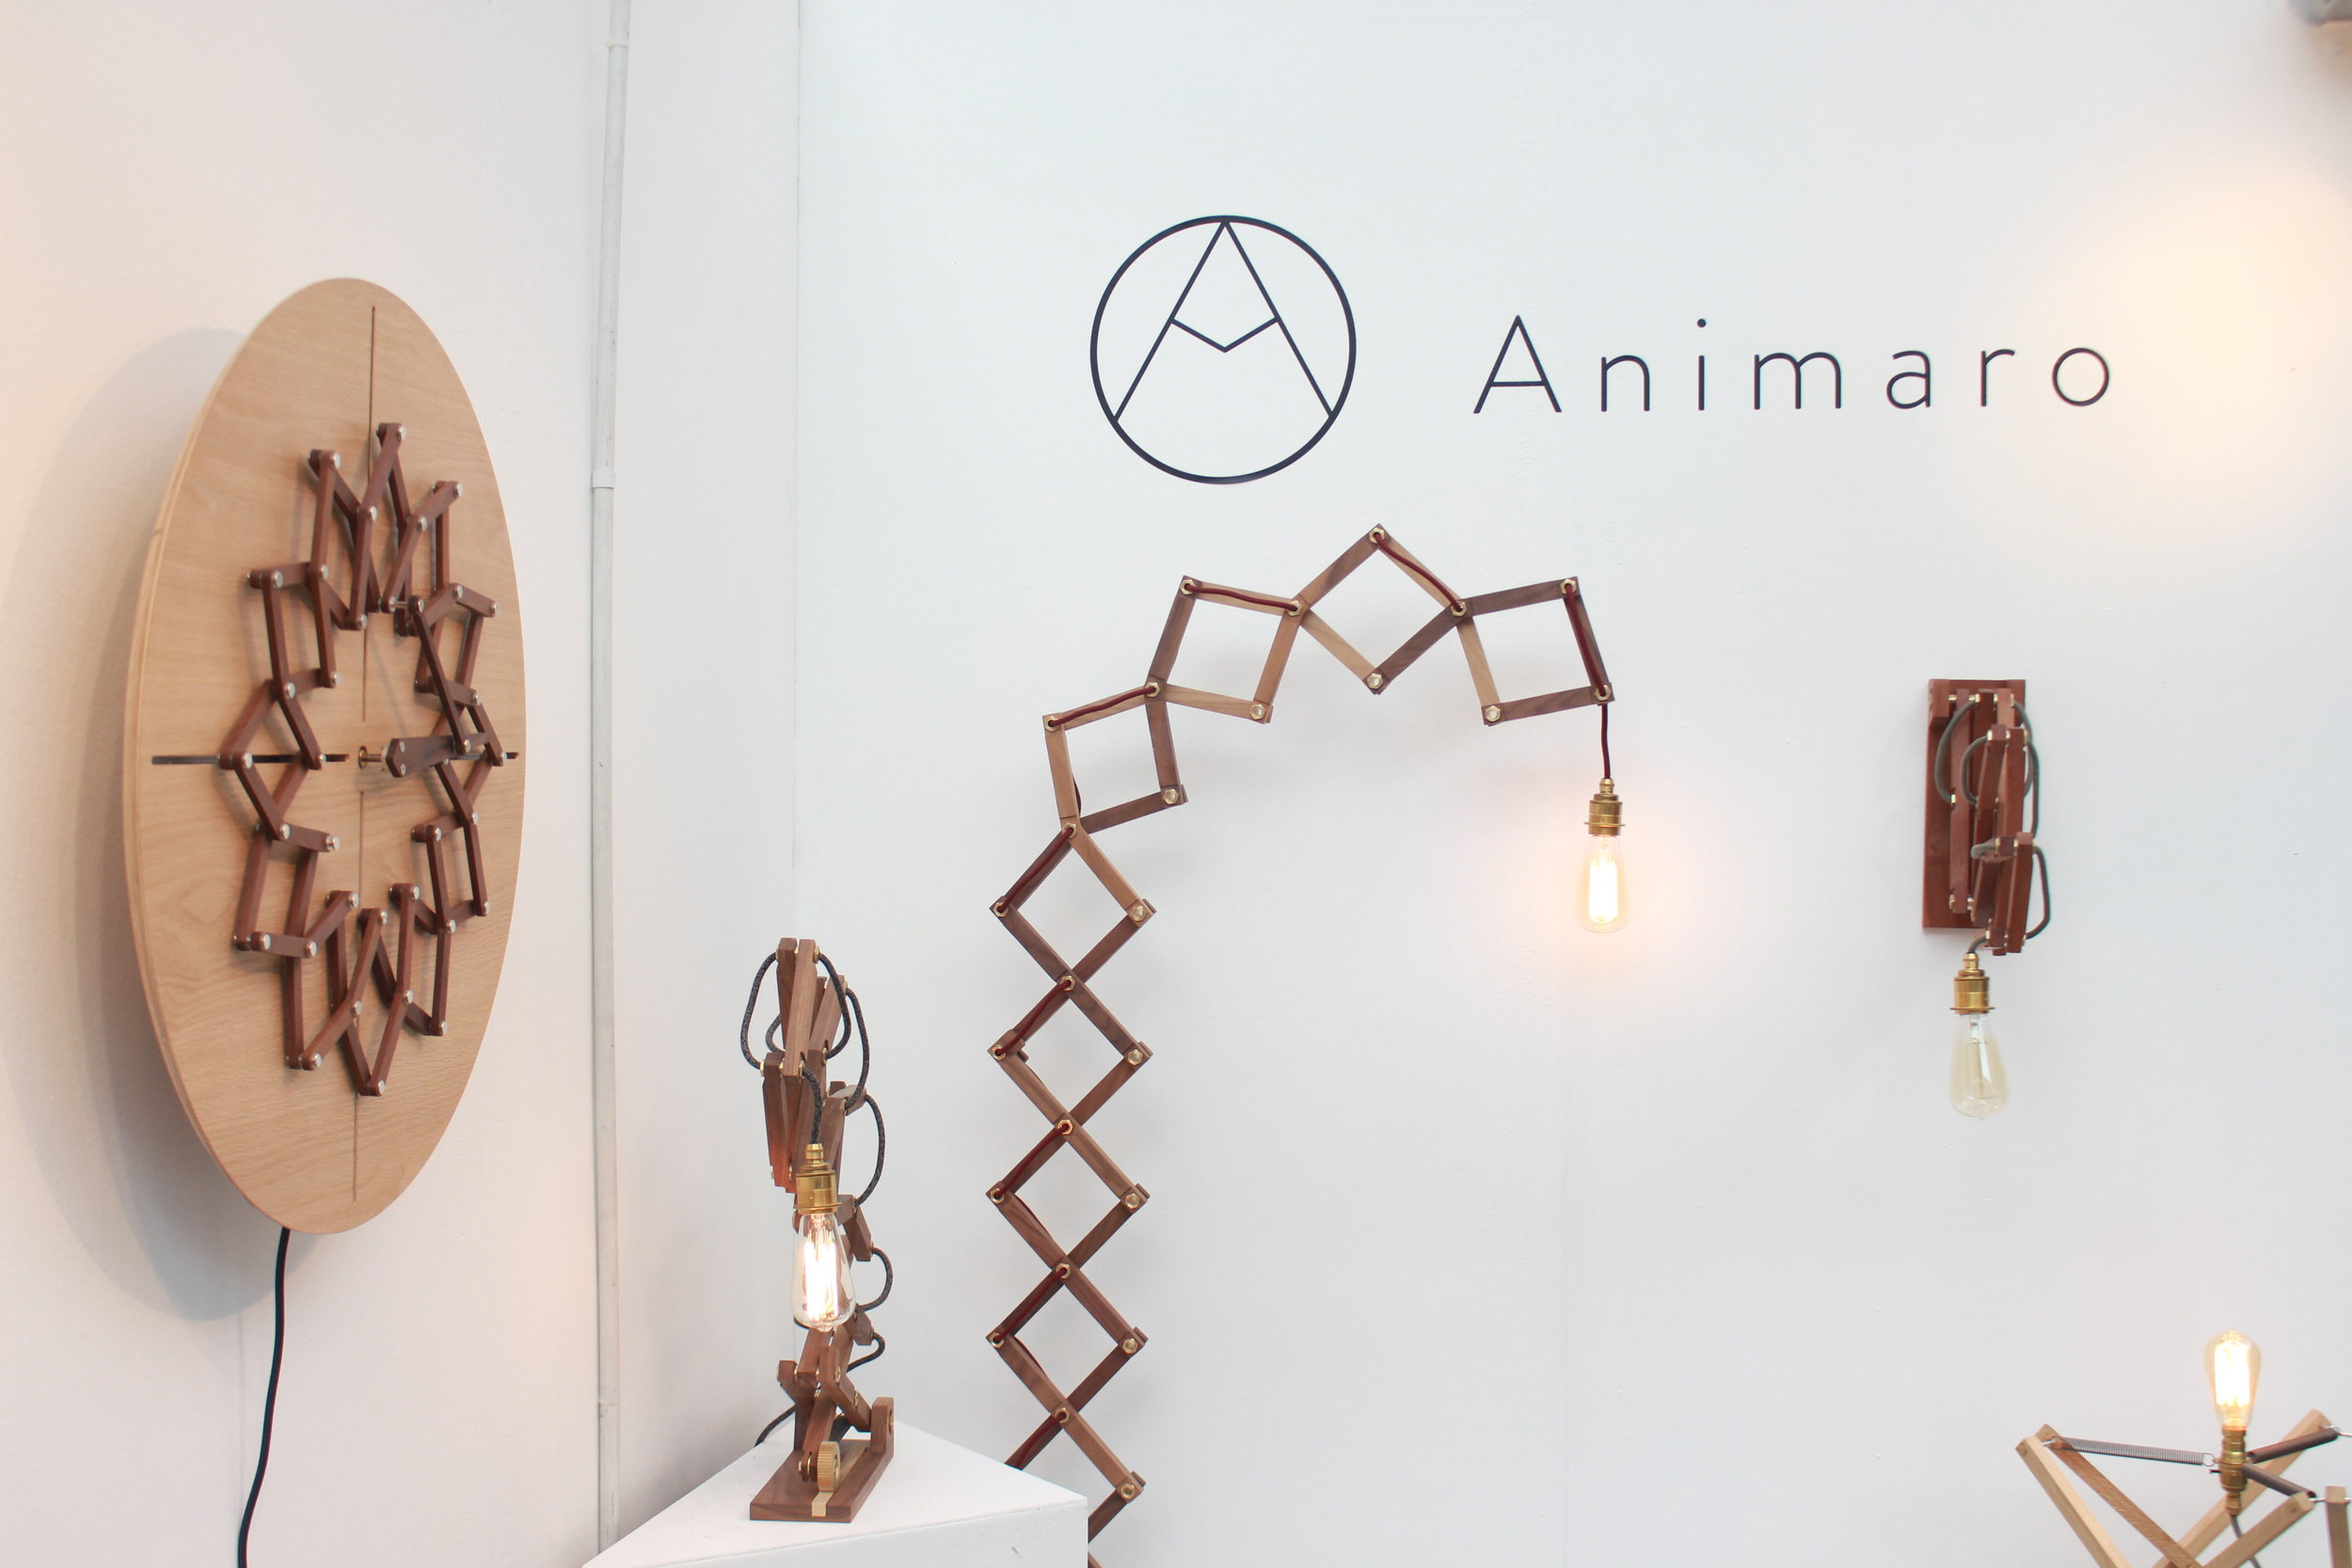 Shot of the Animaro stand at Pulse 2018